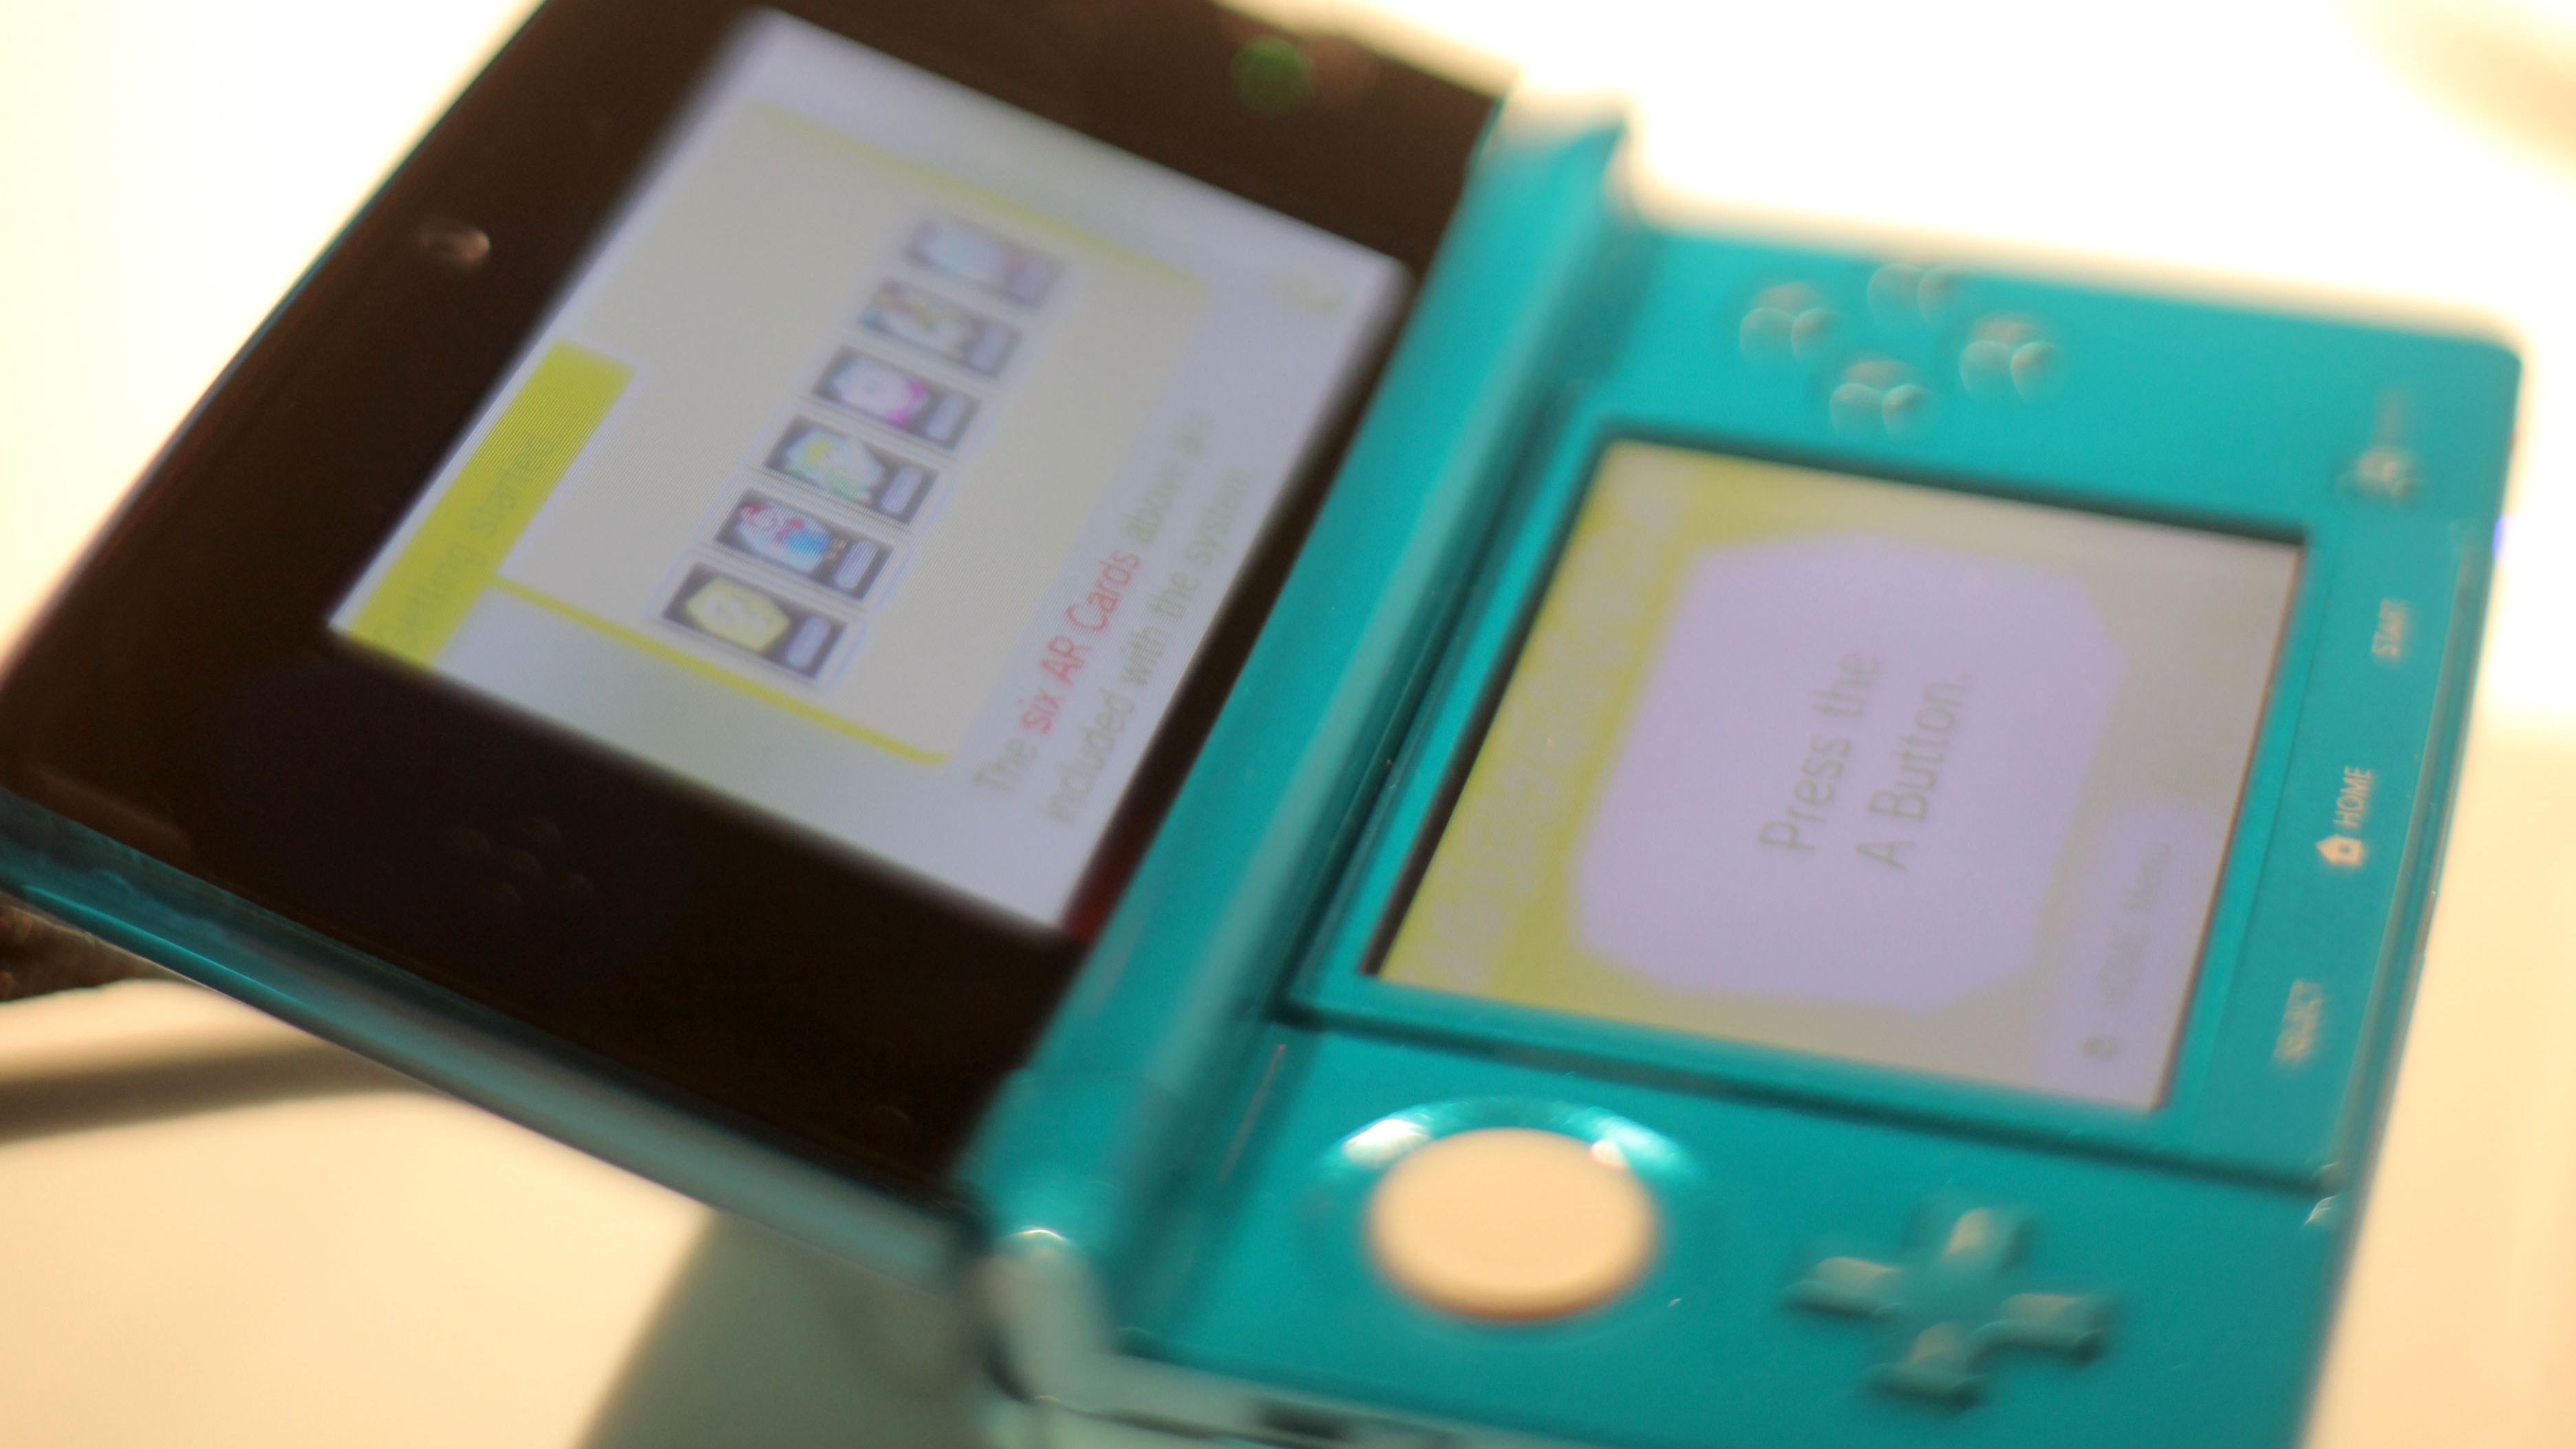 Deleting Apps and Games From Nintendo 3DS